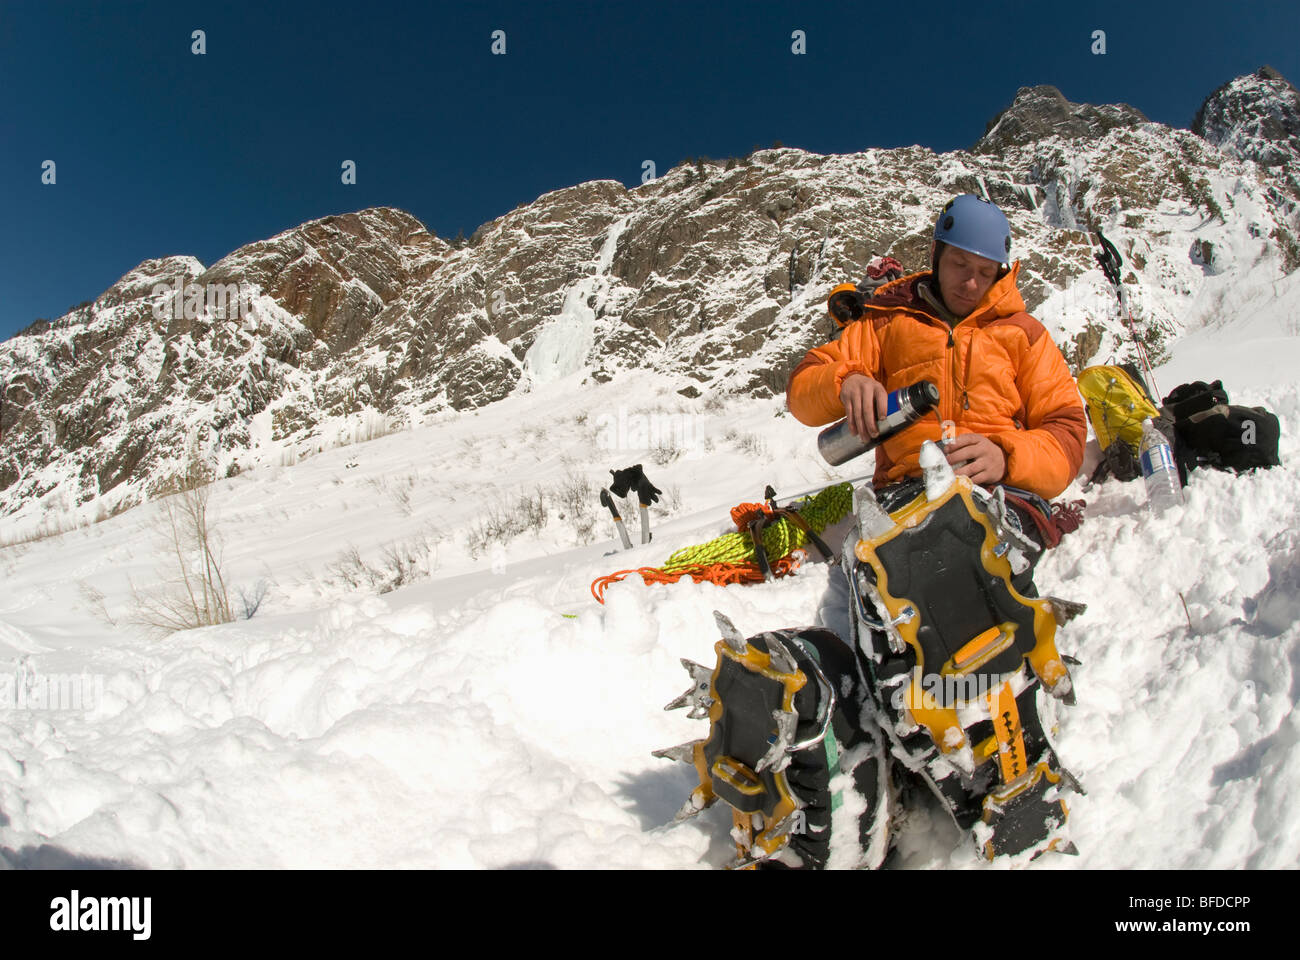 A young man drinking warm tea from a thermos while ice climbing near Ouray, Colorado. - Stock Image